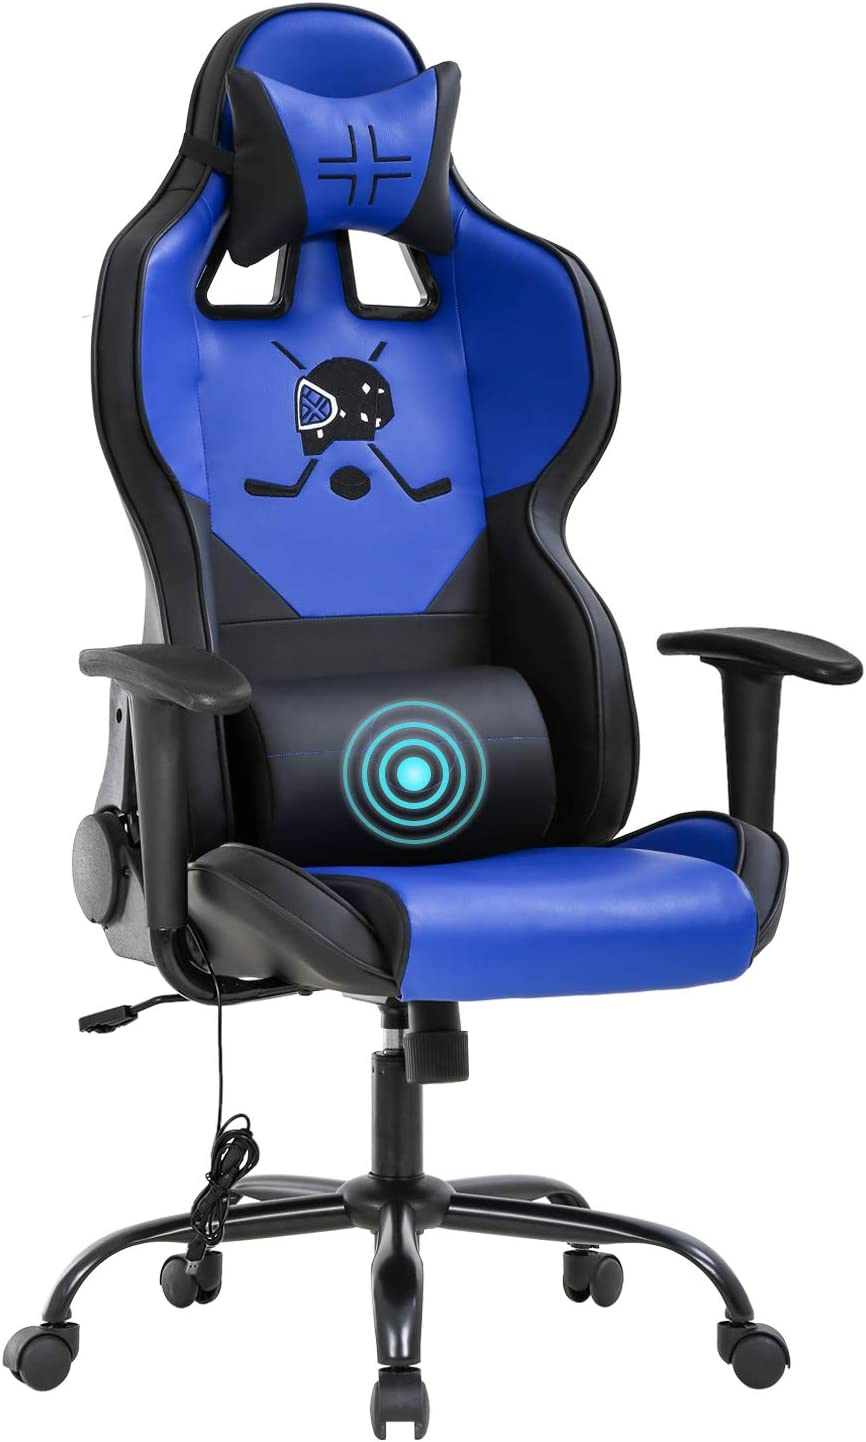 PC Gaming Chair Racing Office Chair Ergonomic Desk Chair with Lumbar Support Headrest Armrest Task Rolling Massage Swivel Chair PU Leather Adjustable E-Sports Computer Chair for Adults Gamer(Blue)